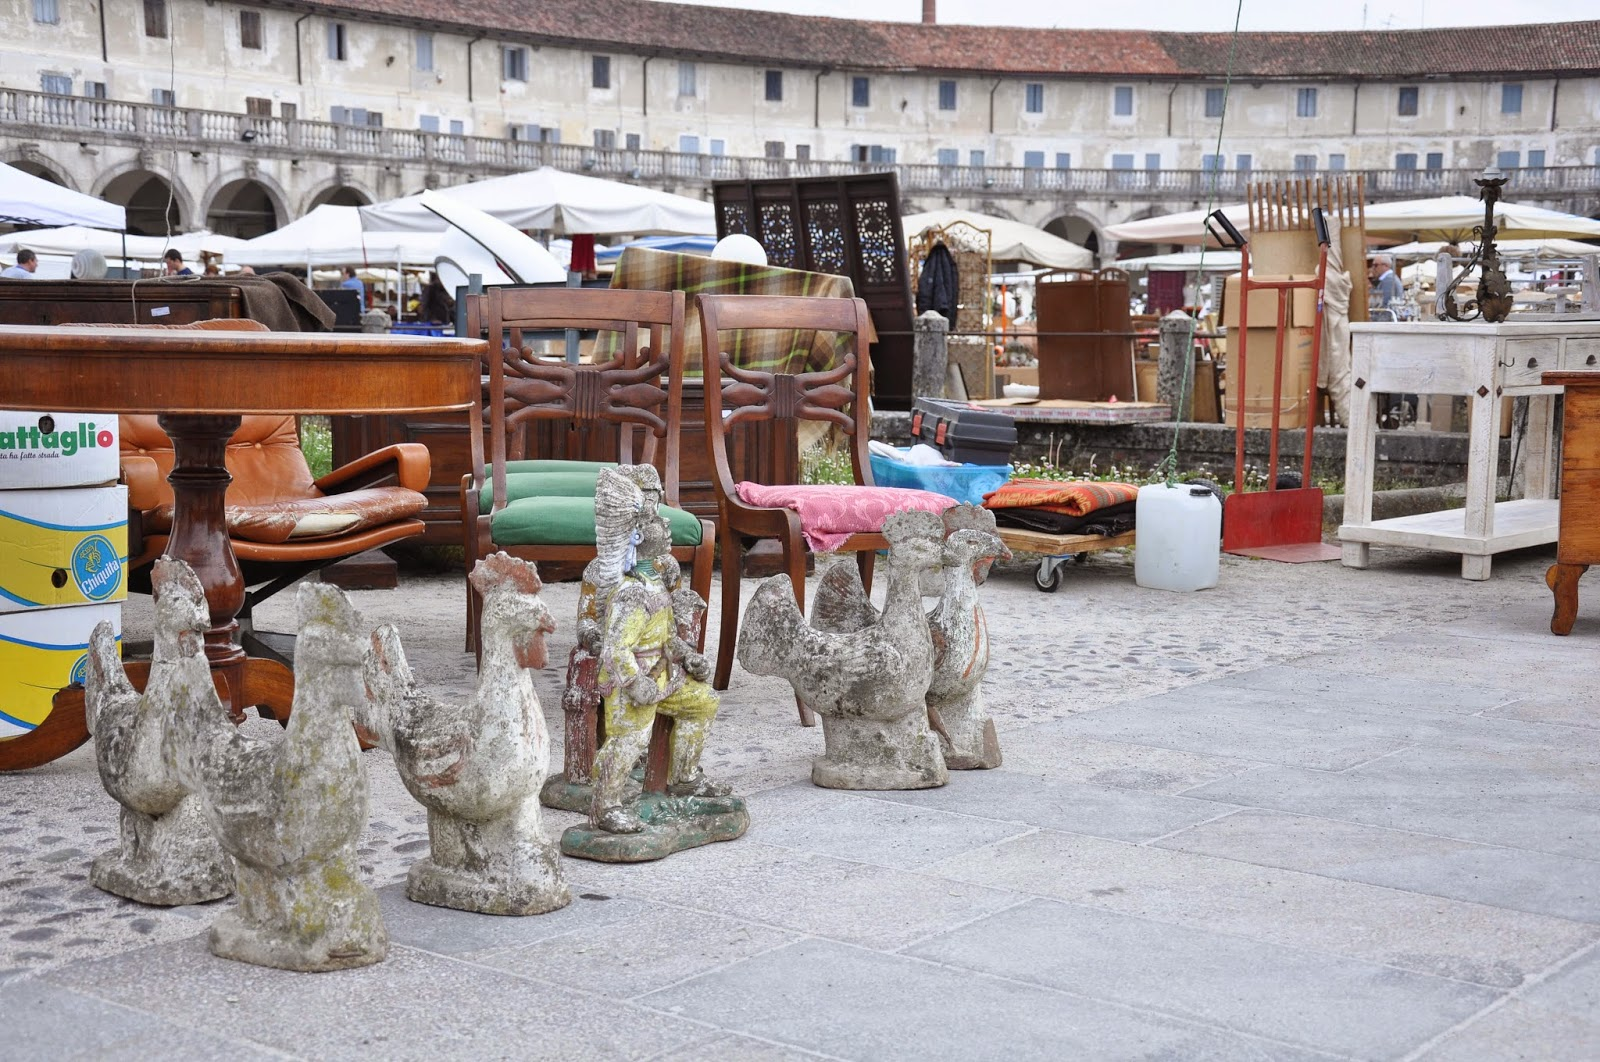 At the antiques market, Piazzola sul Brenta, Veneto, Italy